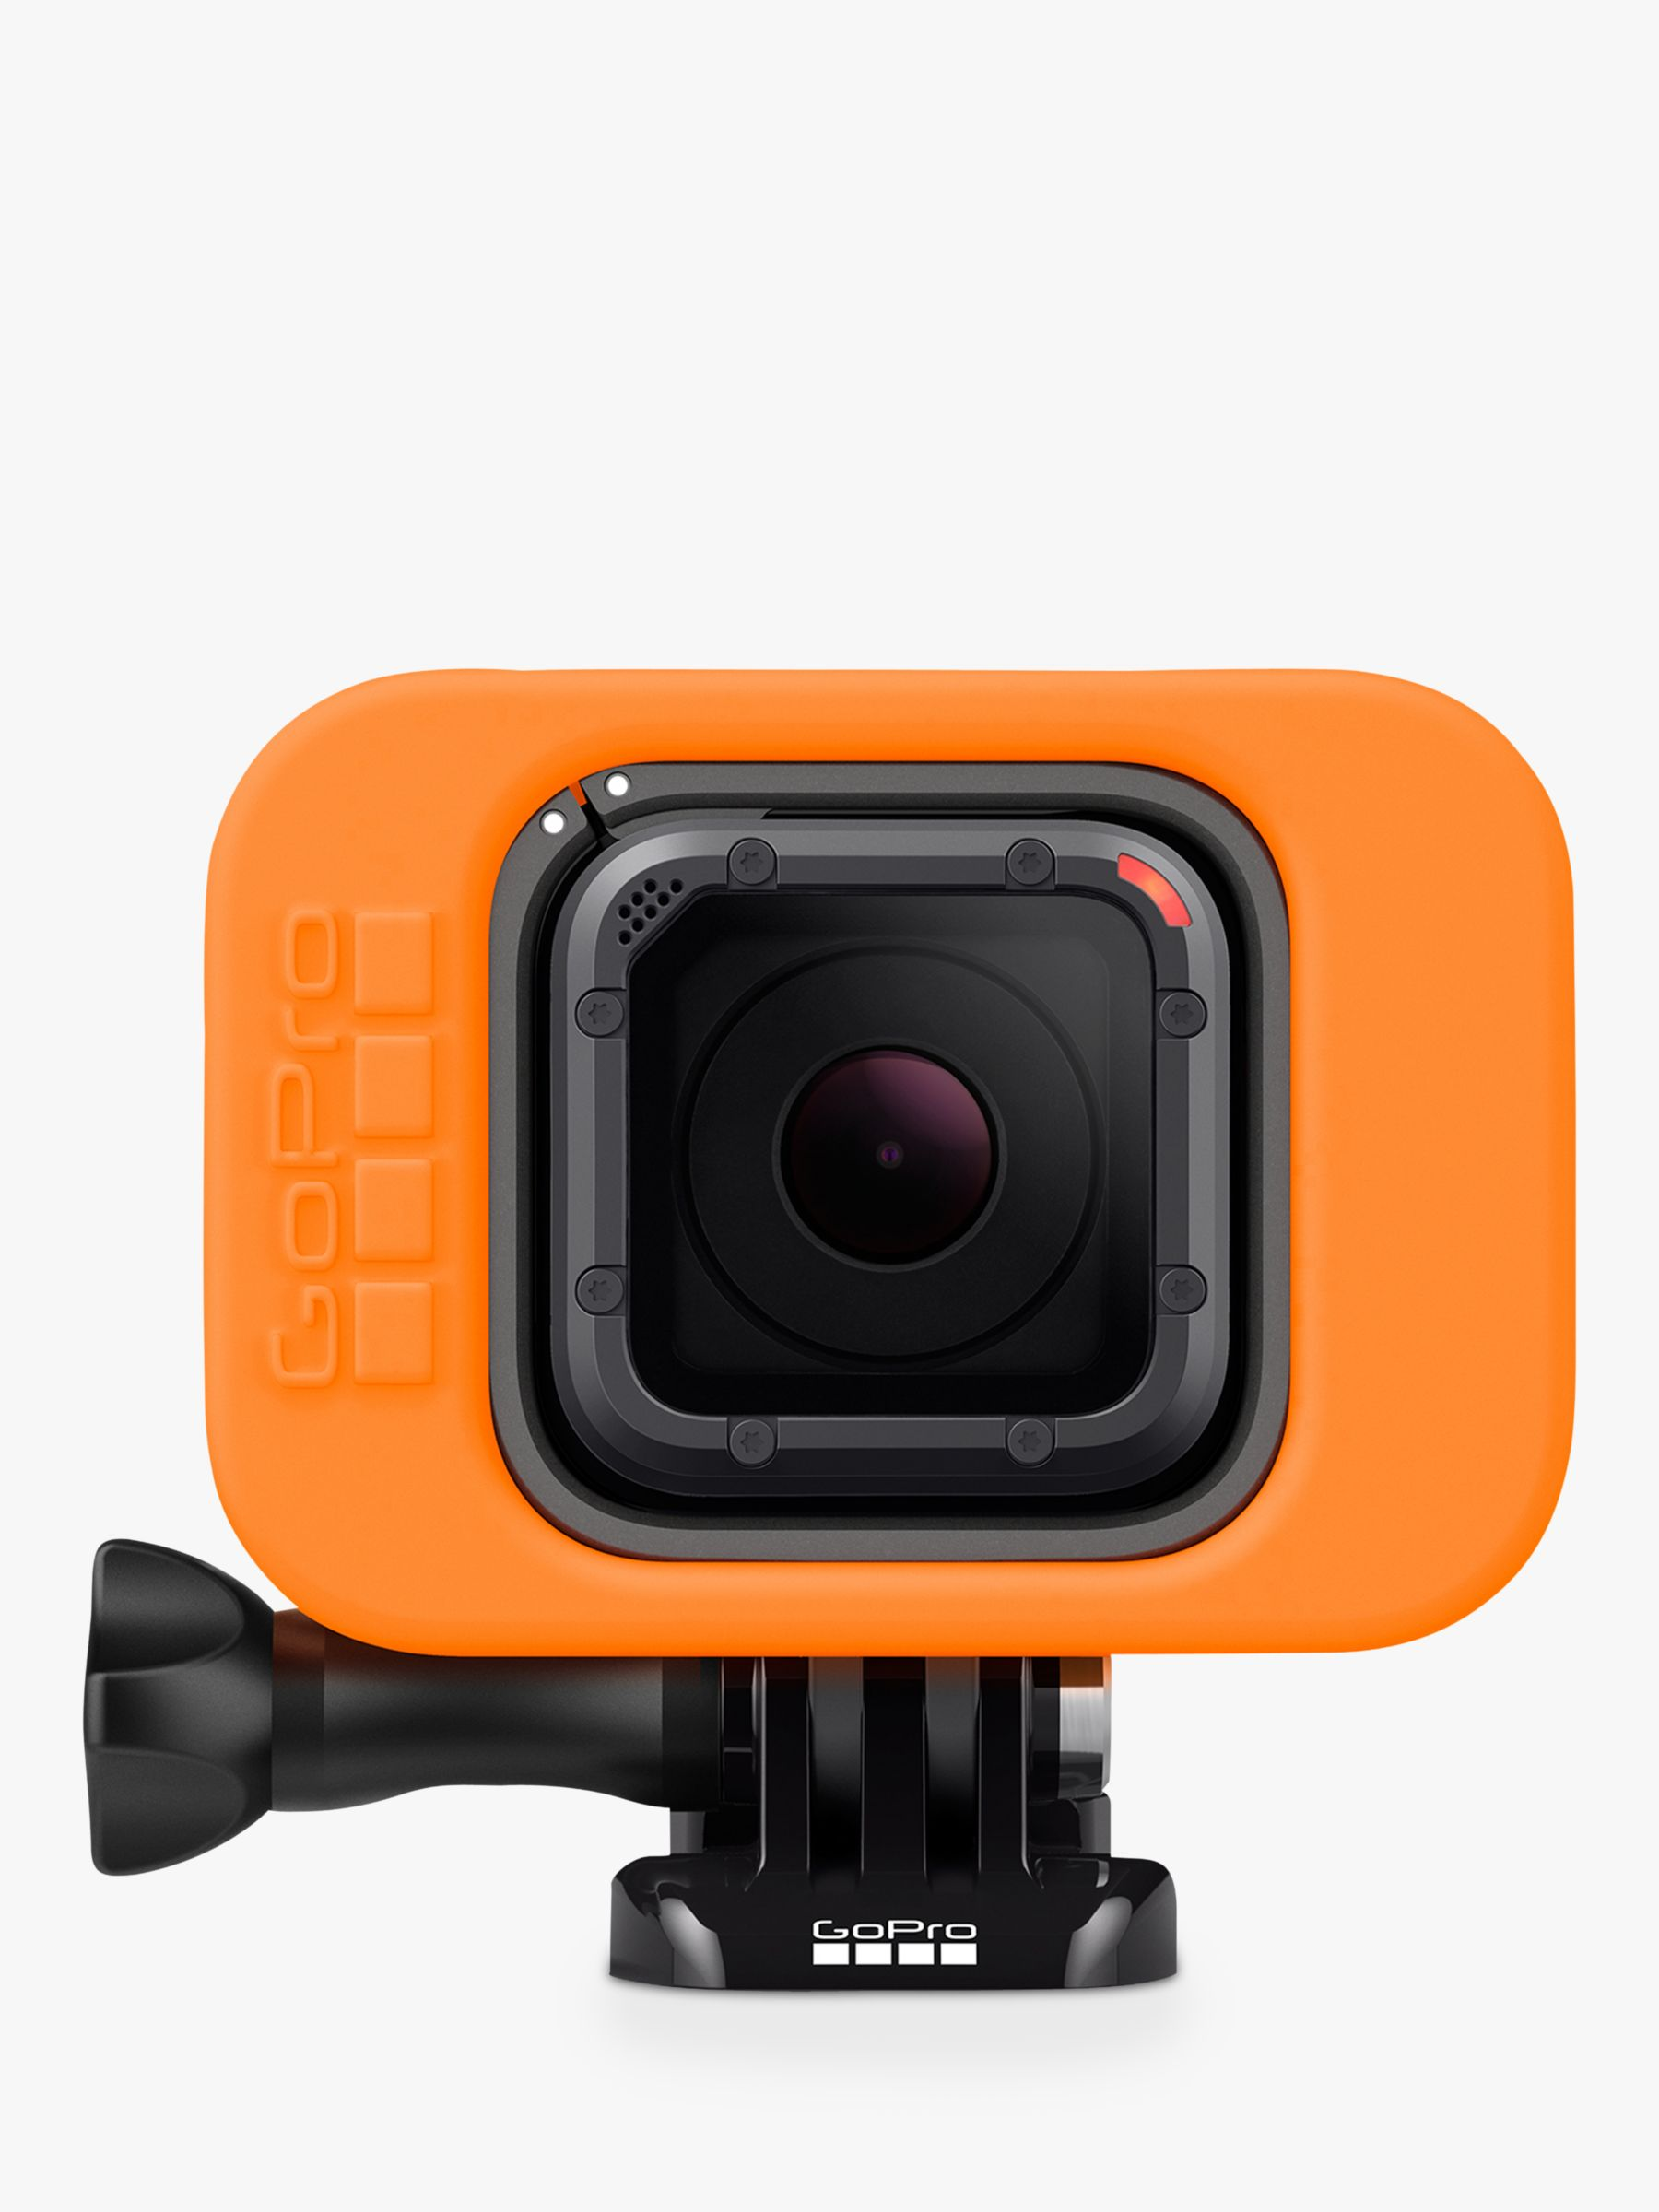 Gopro GoPro Floaty Camera Protector and Flotation Device for HERO Session, Orange